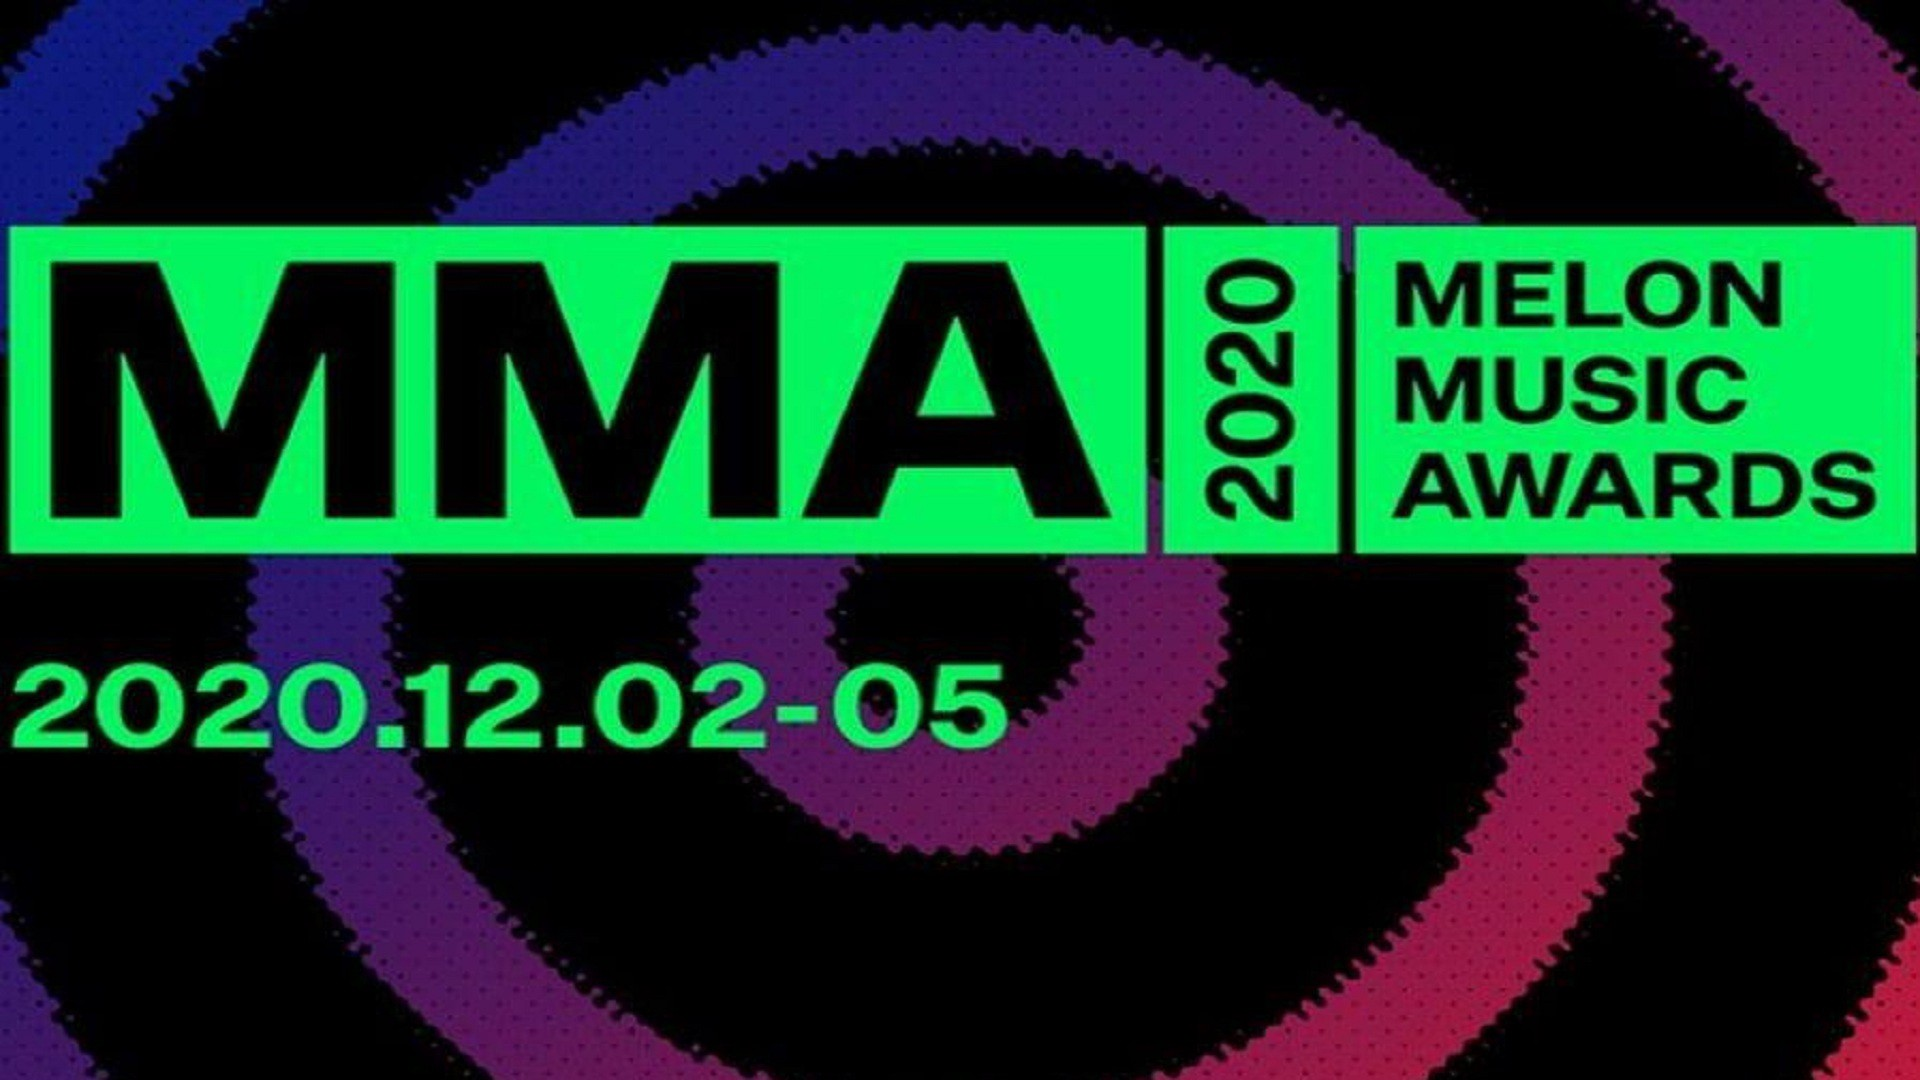 LIVE] Melon Music Awards (2020) FulL — ShOw | by John Z Petersen | Melon Music Awards (2020) FulL — ShOw | Dec, 2020 | Medium